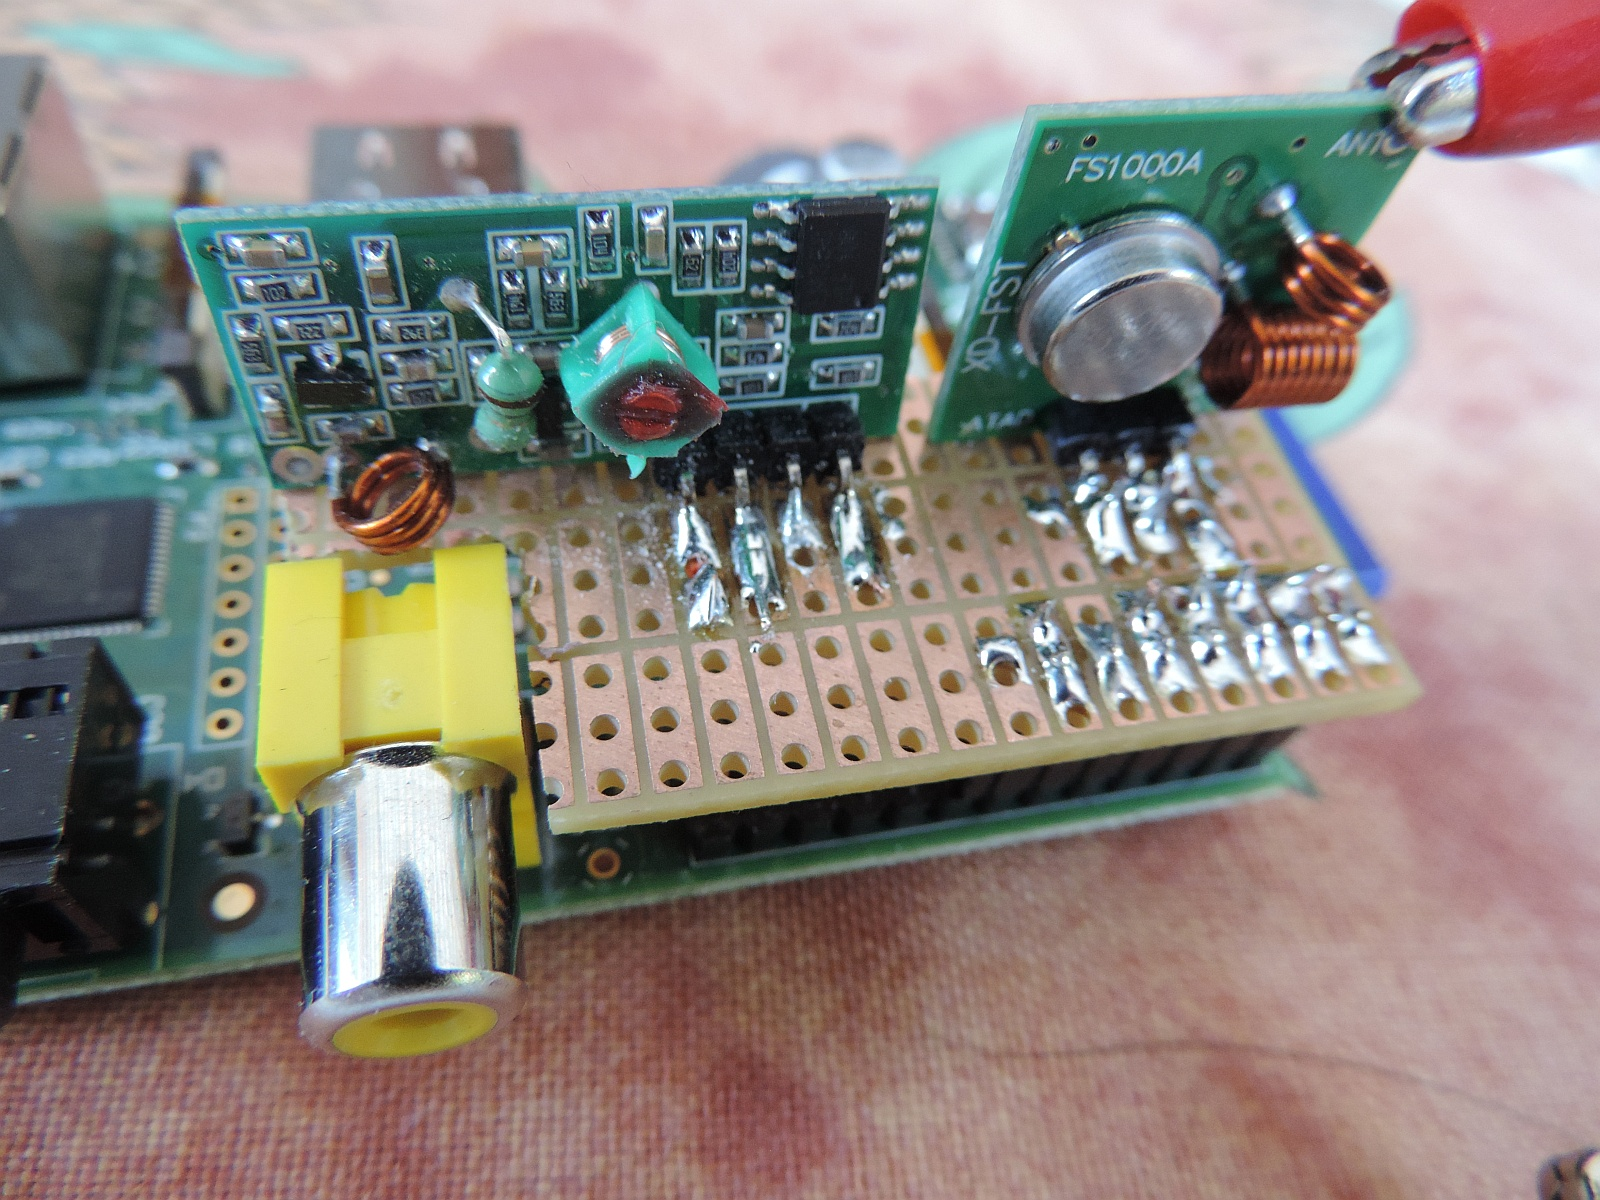 Hardware Guide 433mhz Receiver Circuit Esp8266 Copy Frankly I Love These Sets As For Just 10 Can Make At Least 5 Prototype Boards And See Which One Fits My Pi Better